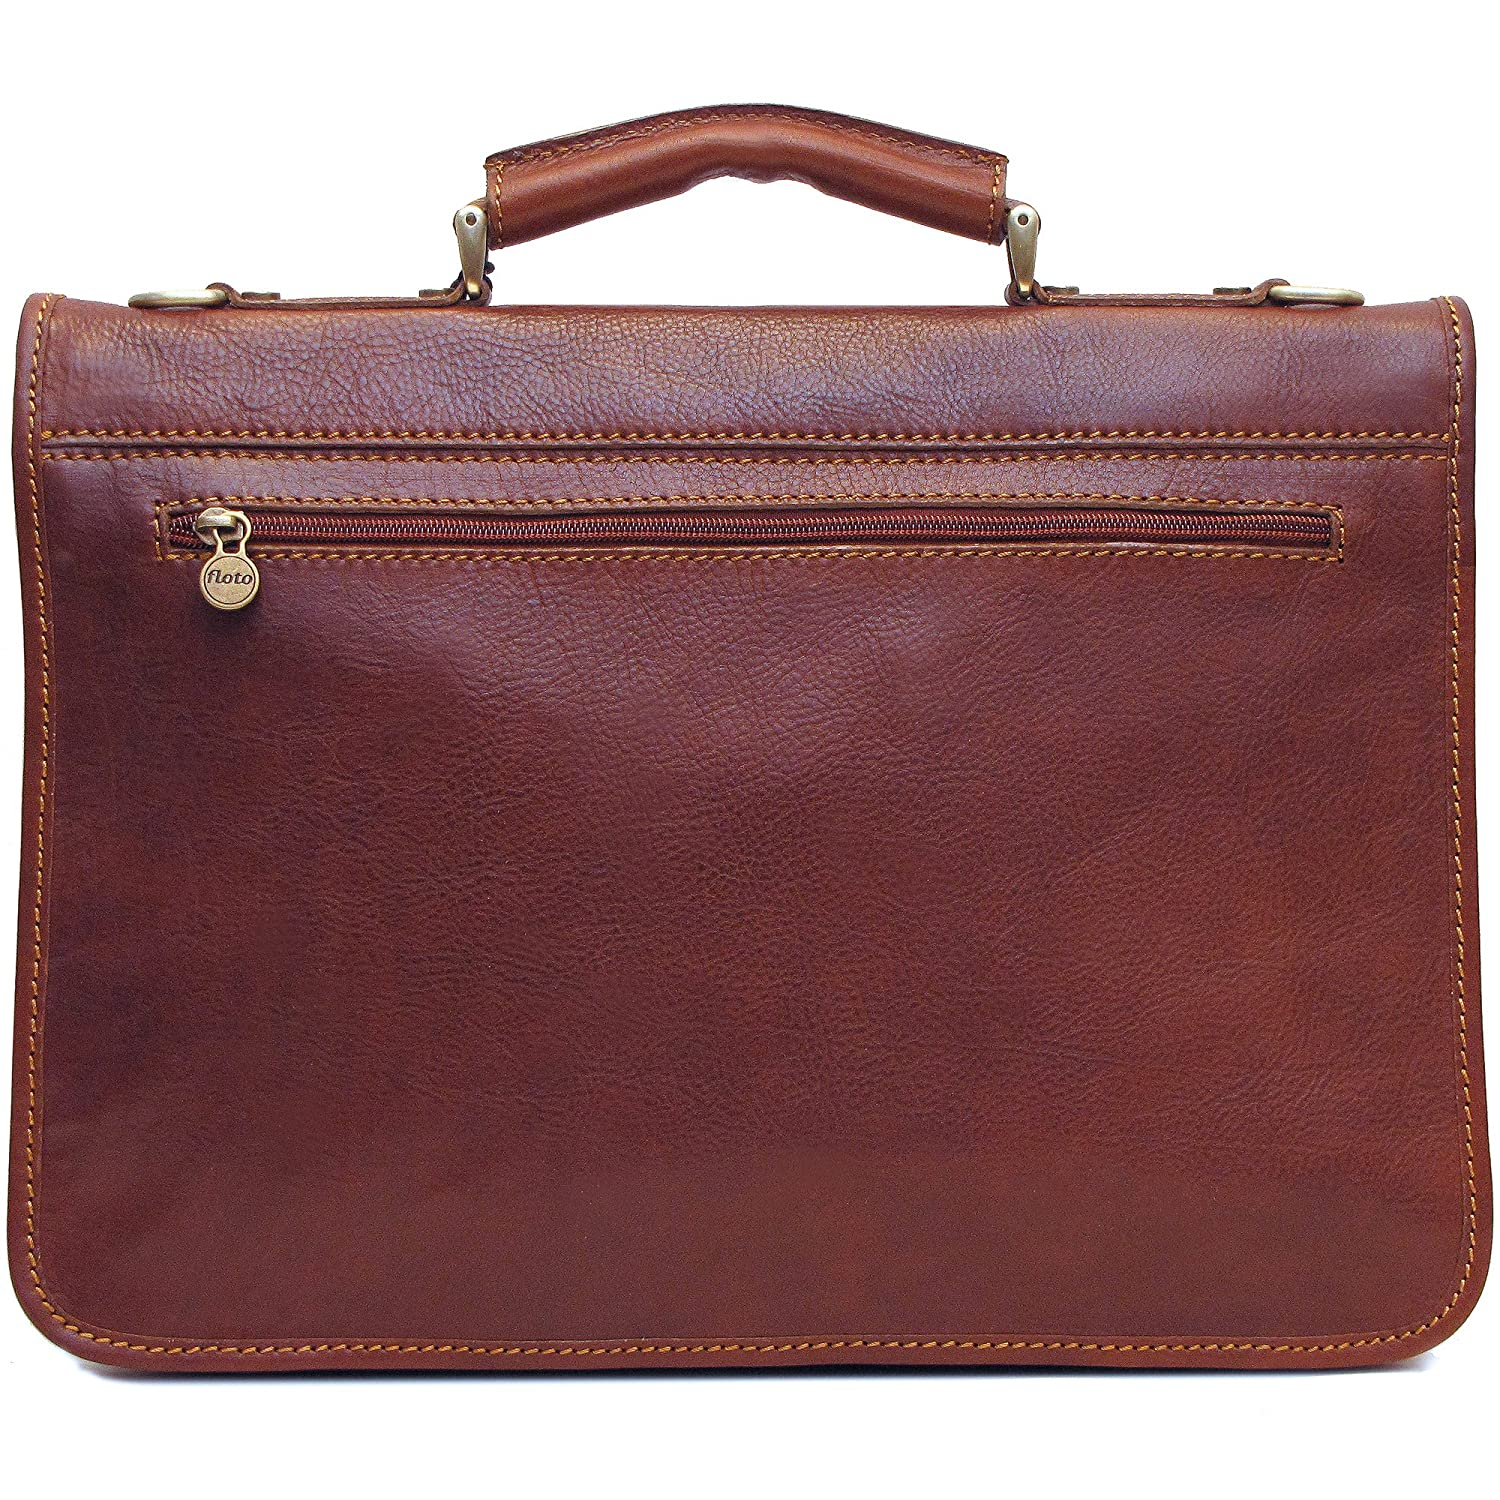 352dec01b5 Amazon.com  Floto Leather Briefcase Messenger Bag in Brown Italian  Calfskin  Floto  Computers   Accessories